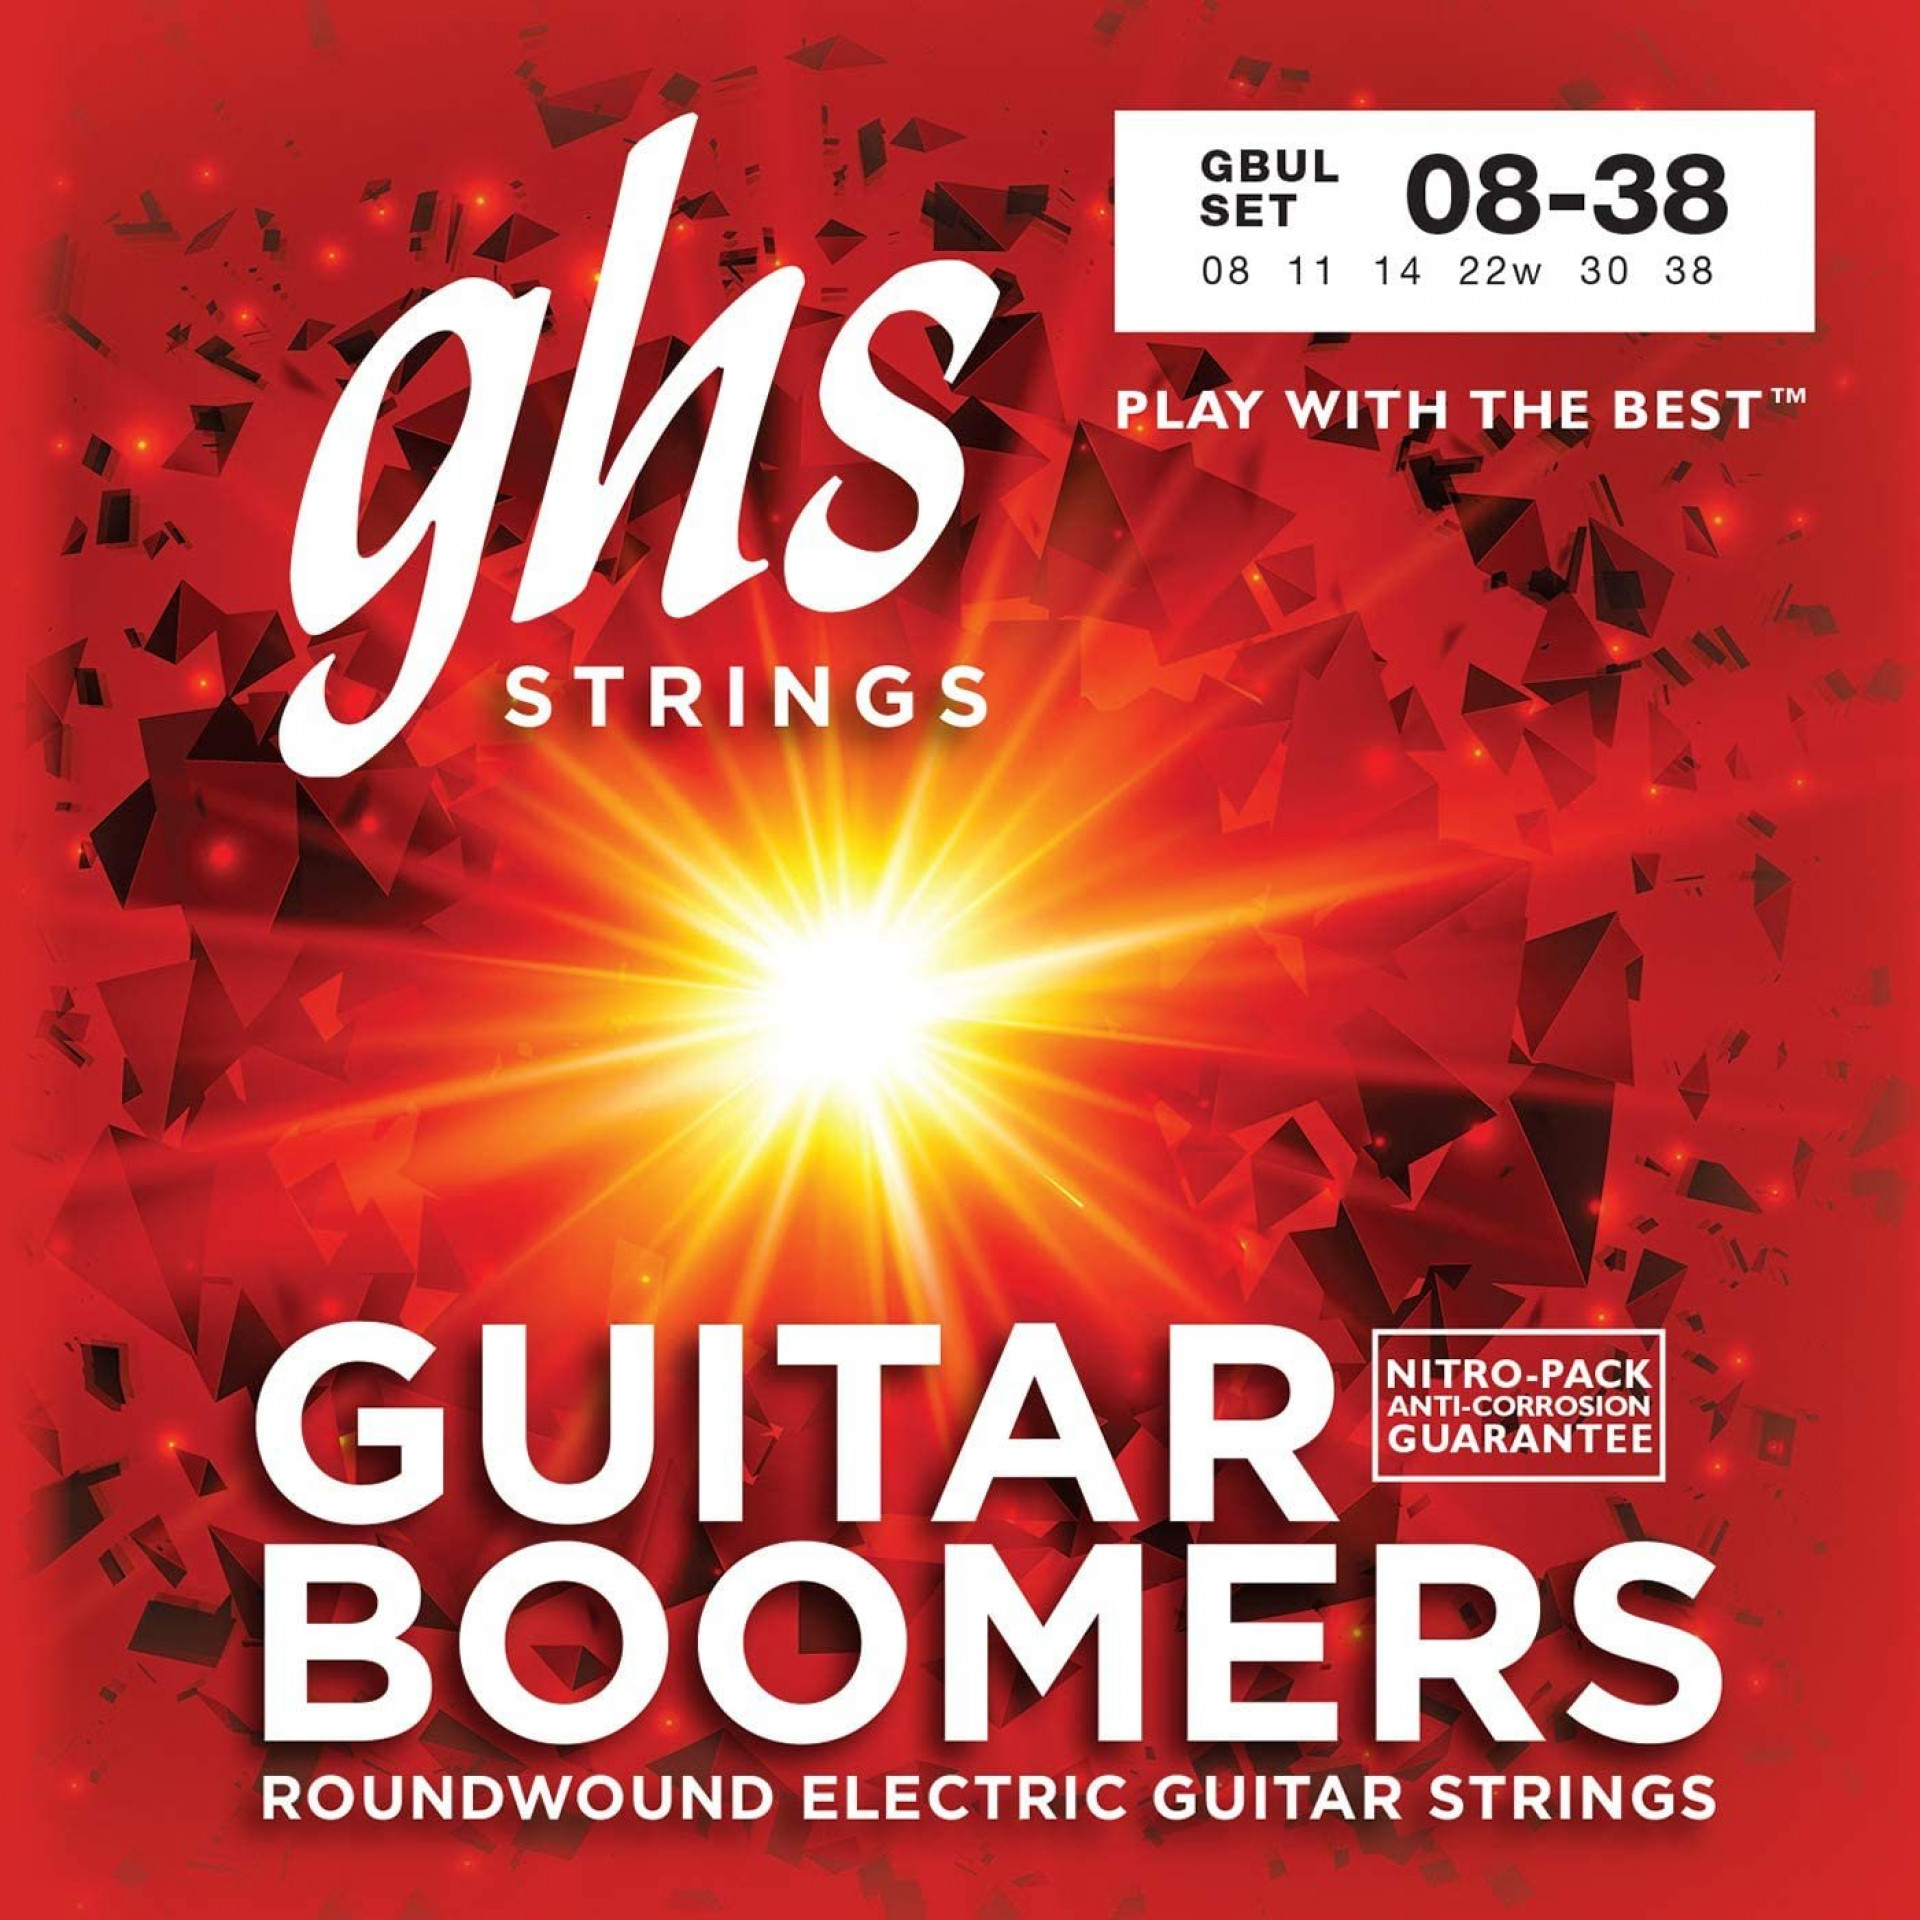 GHS GBUL Boomers Roundwound Ultra Light Electric Guitar Strings (6-String Set, 8 - 38)